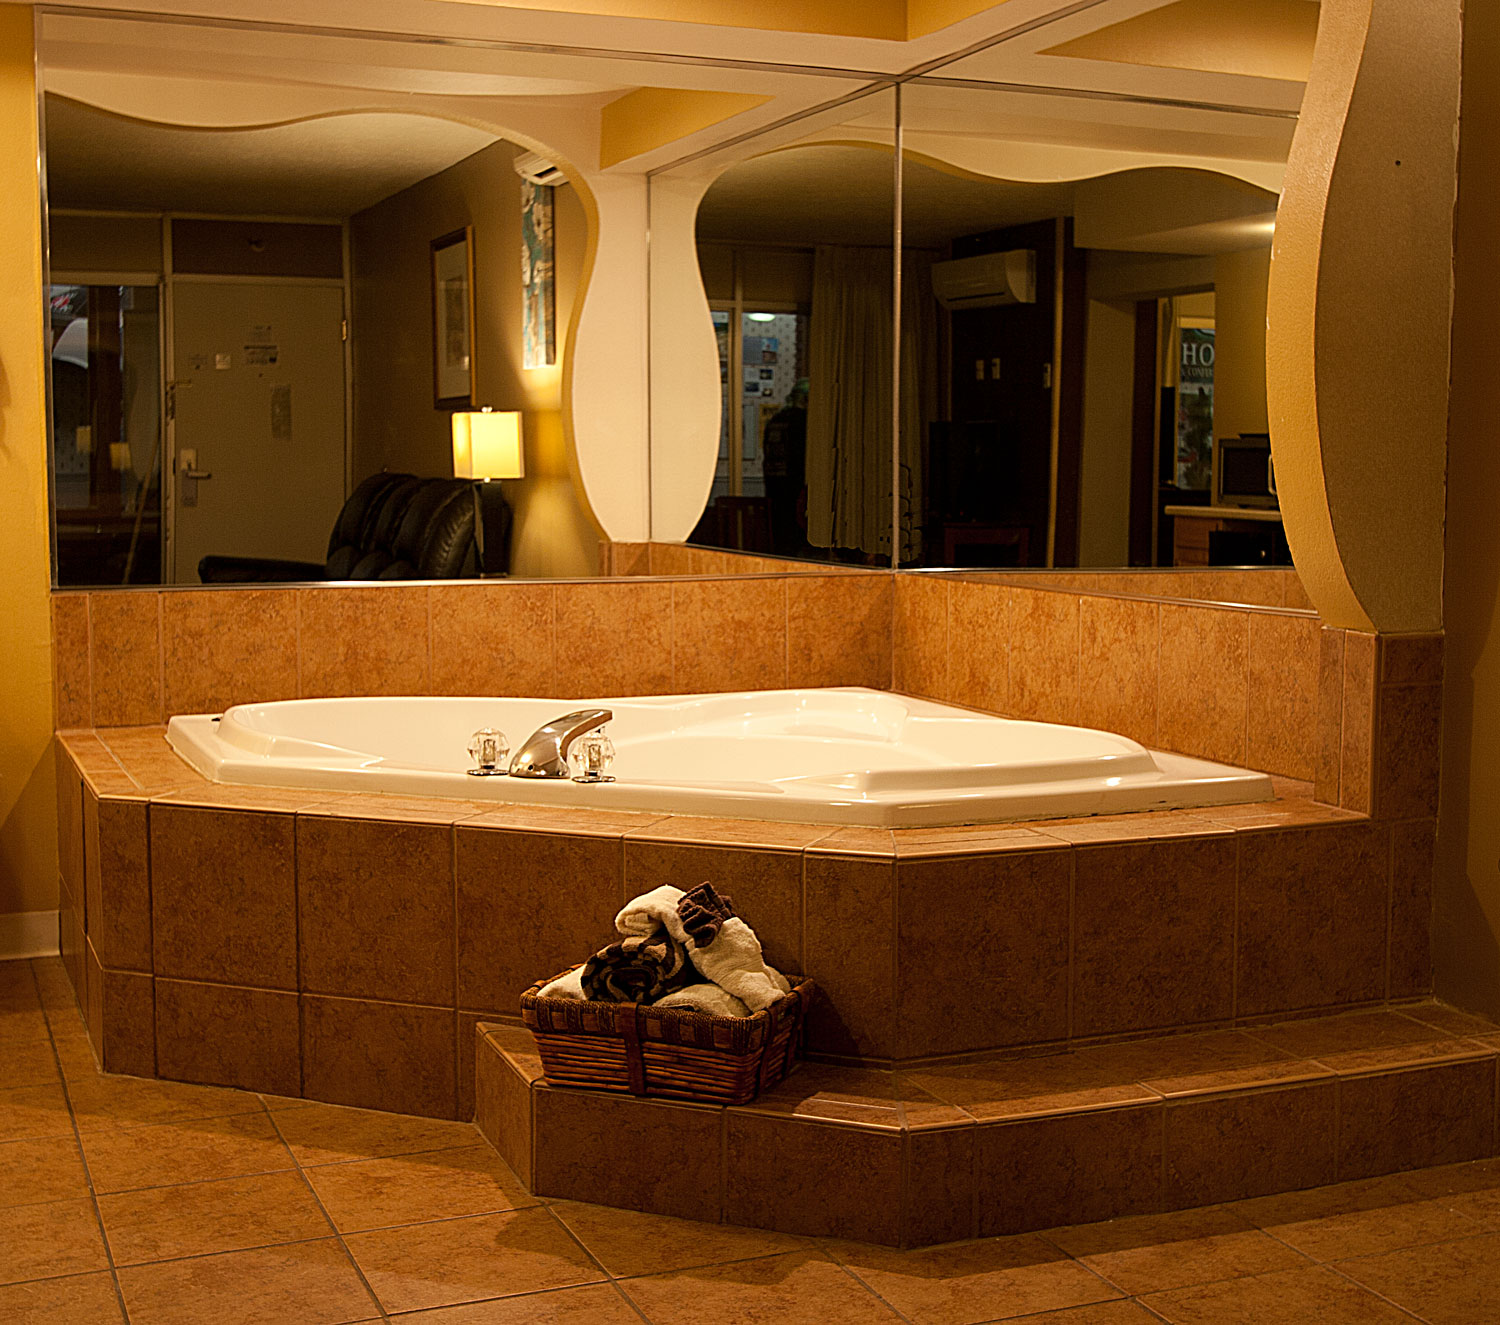 Jacuzzi Hot Tubs In Hotel Room Uk